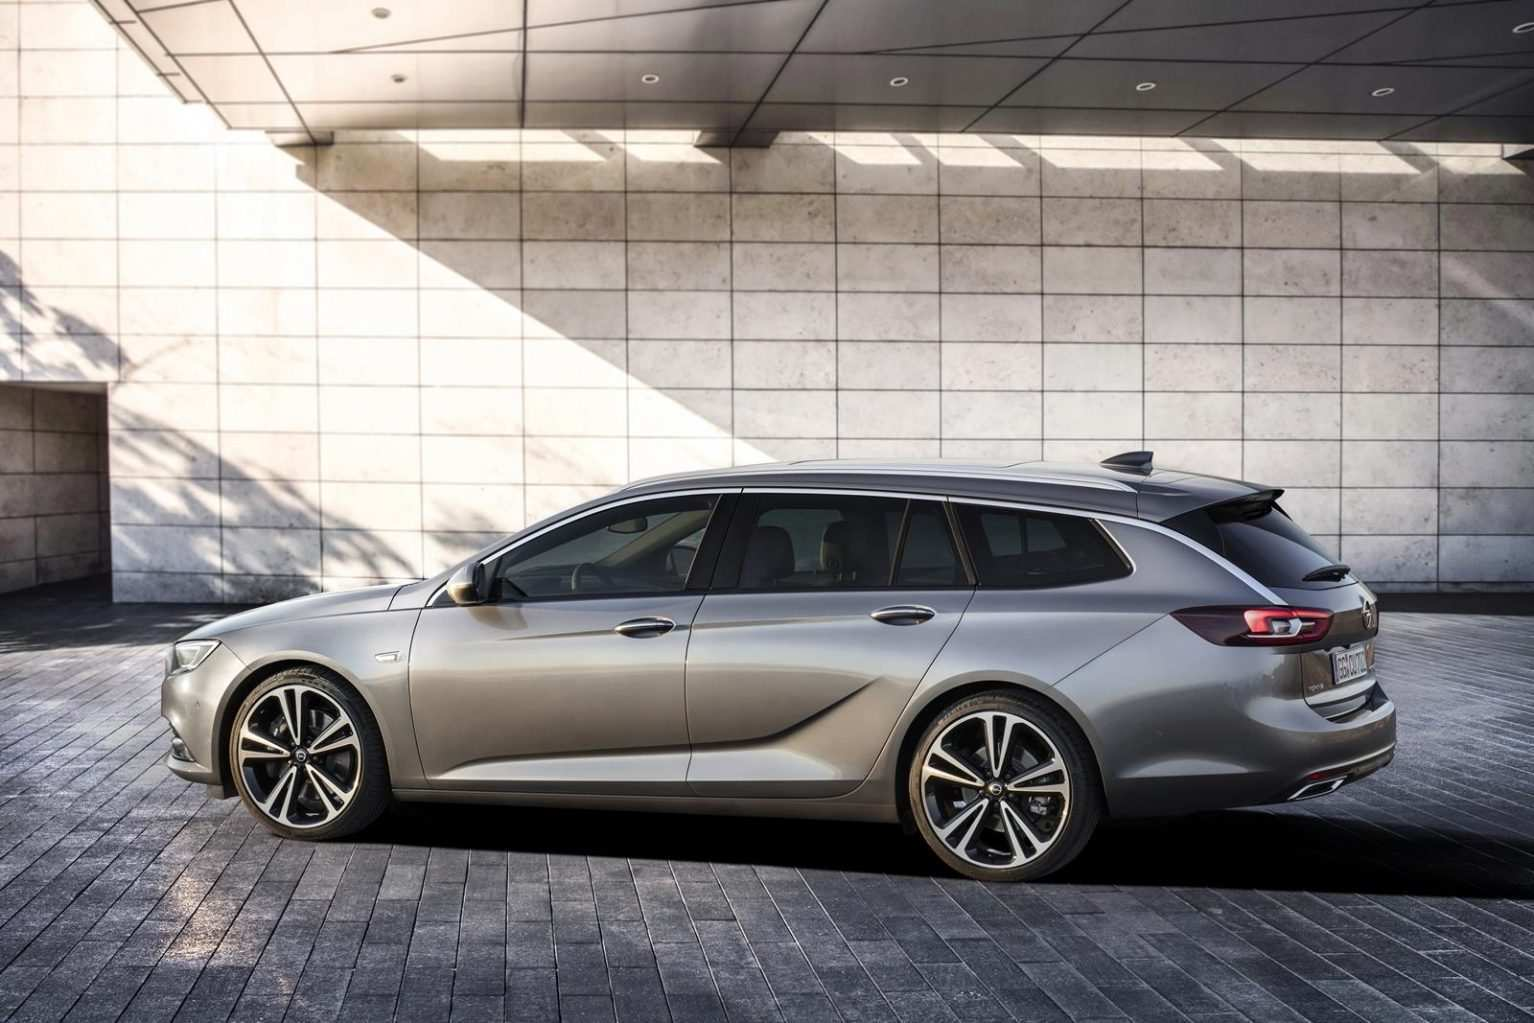 19 Gallery of 2019 Peugeot 508 Sw Specs and Review for 2019 Peugeot 508 Sw